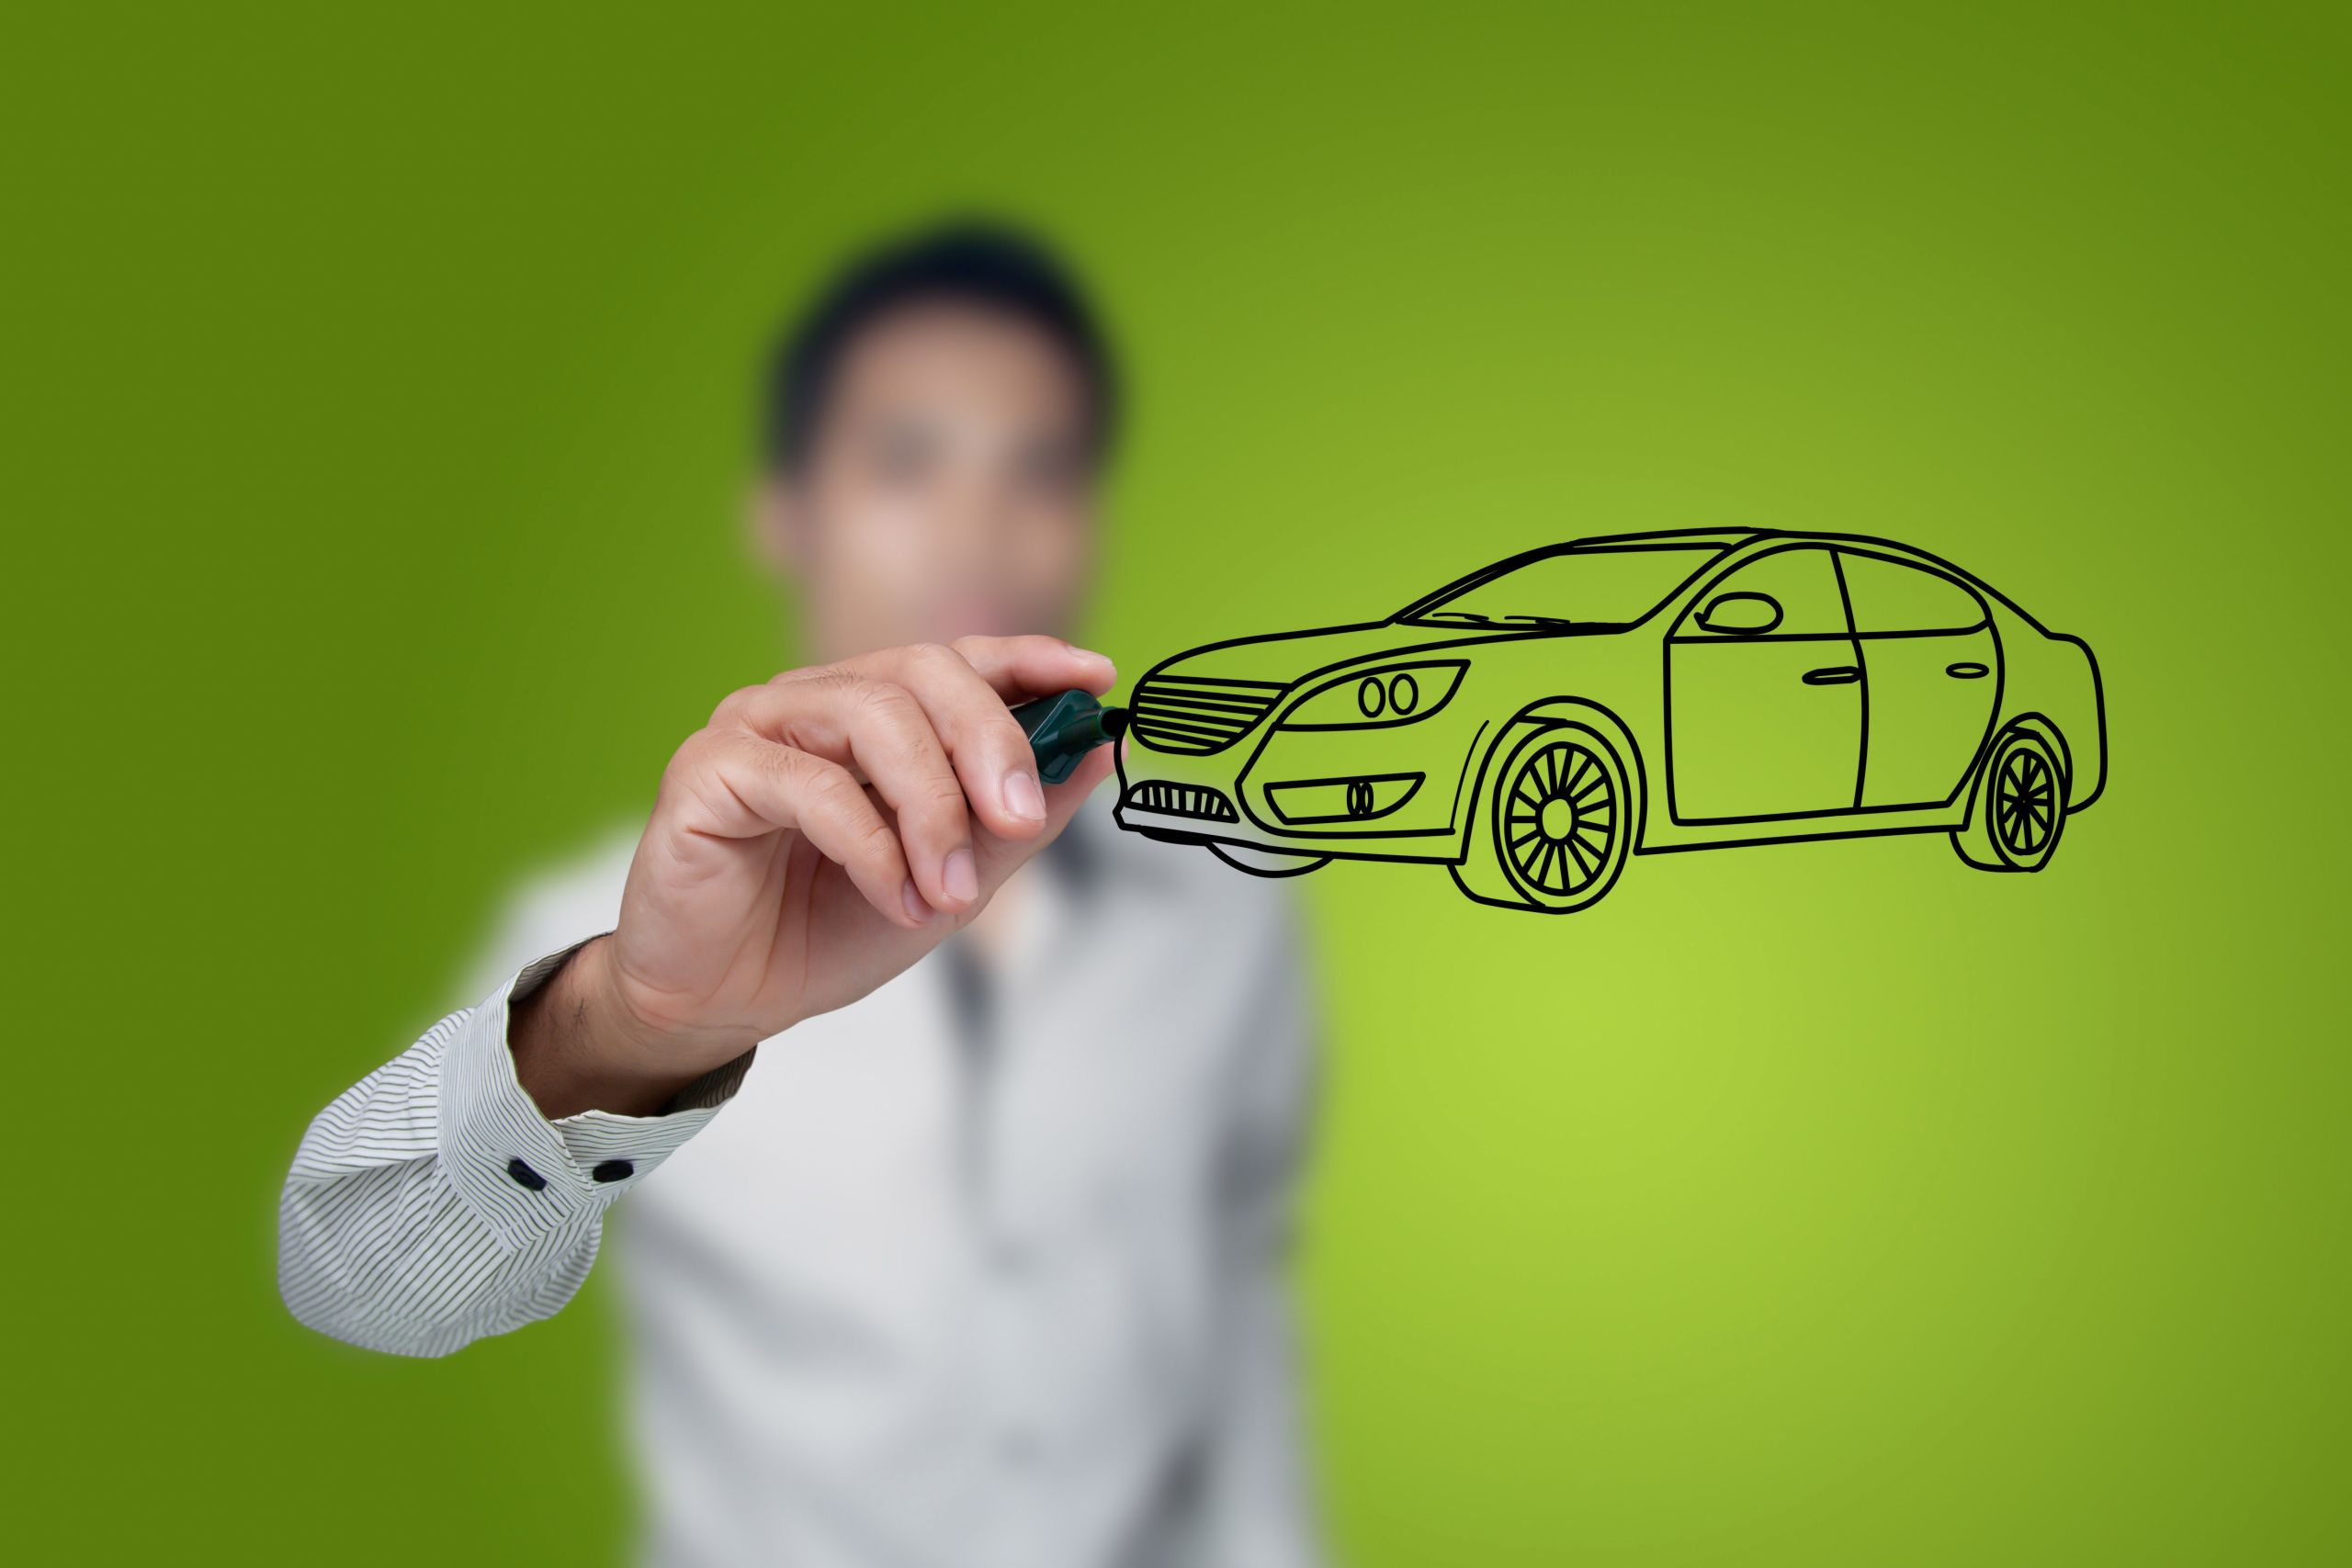 Image of a man drawing an outline of a black car on glass with green background